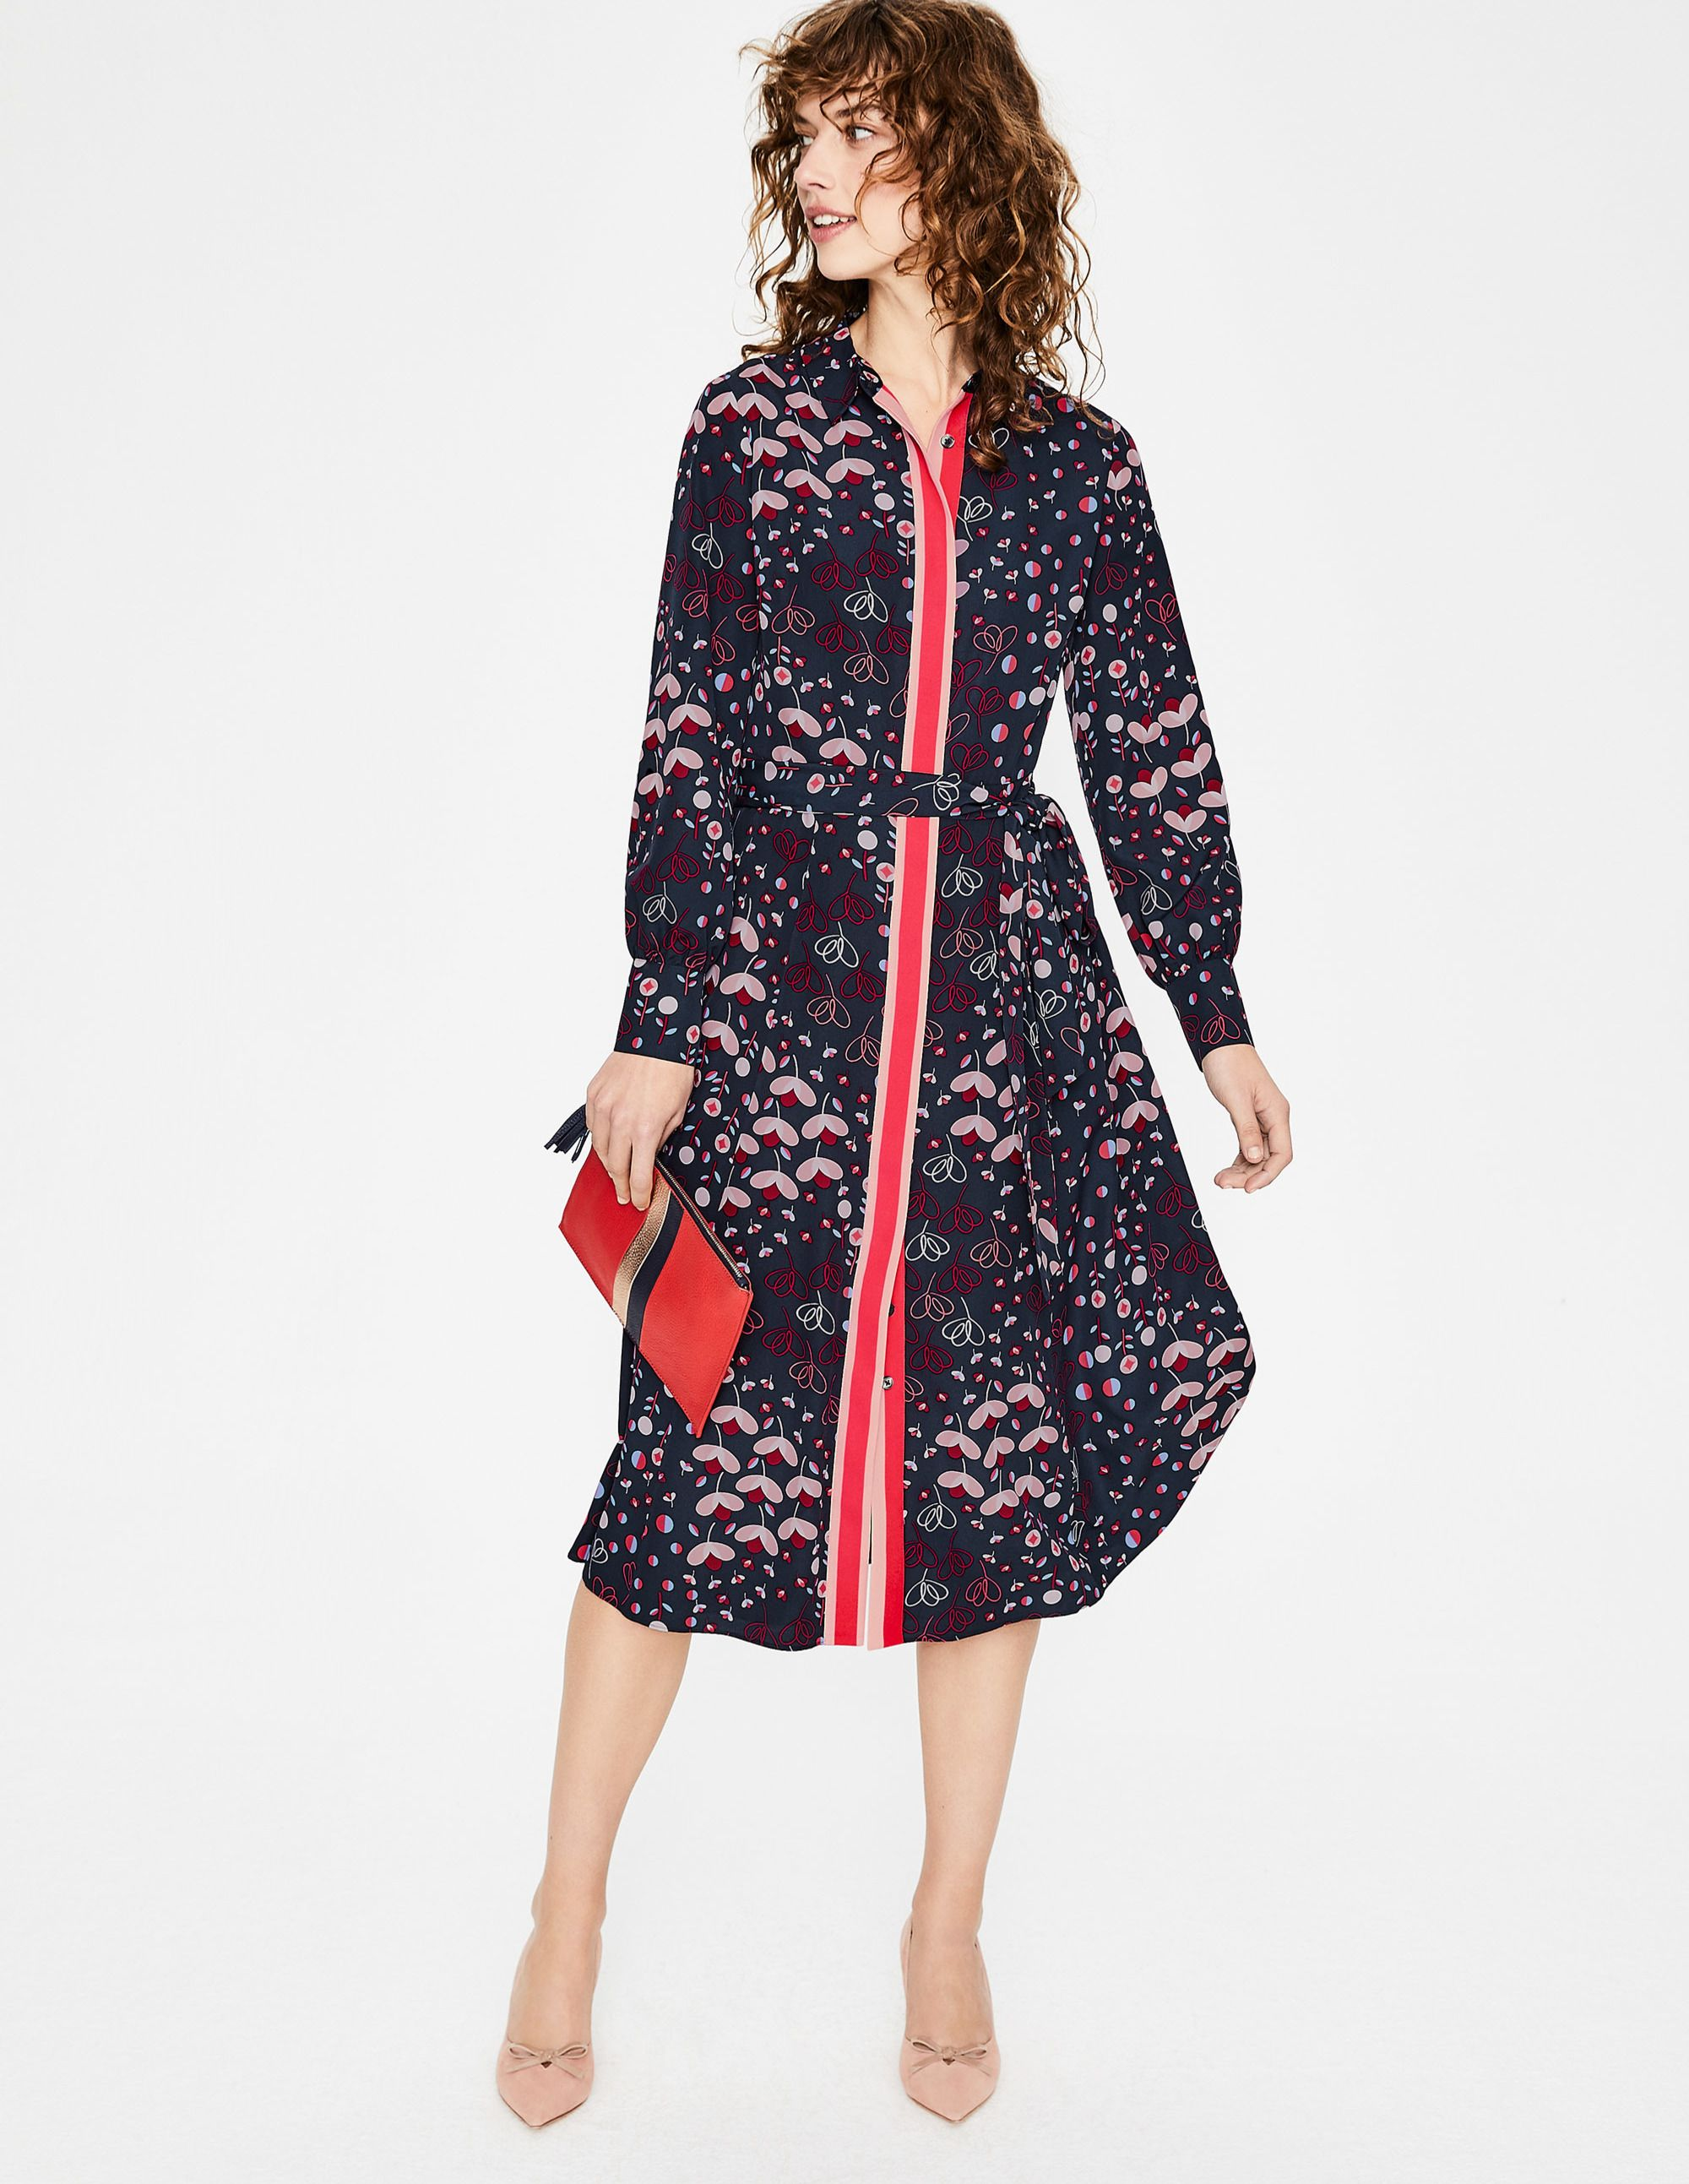 4ead64fe503 Pippa Shirt Dress W0182 Dresses at Boden